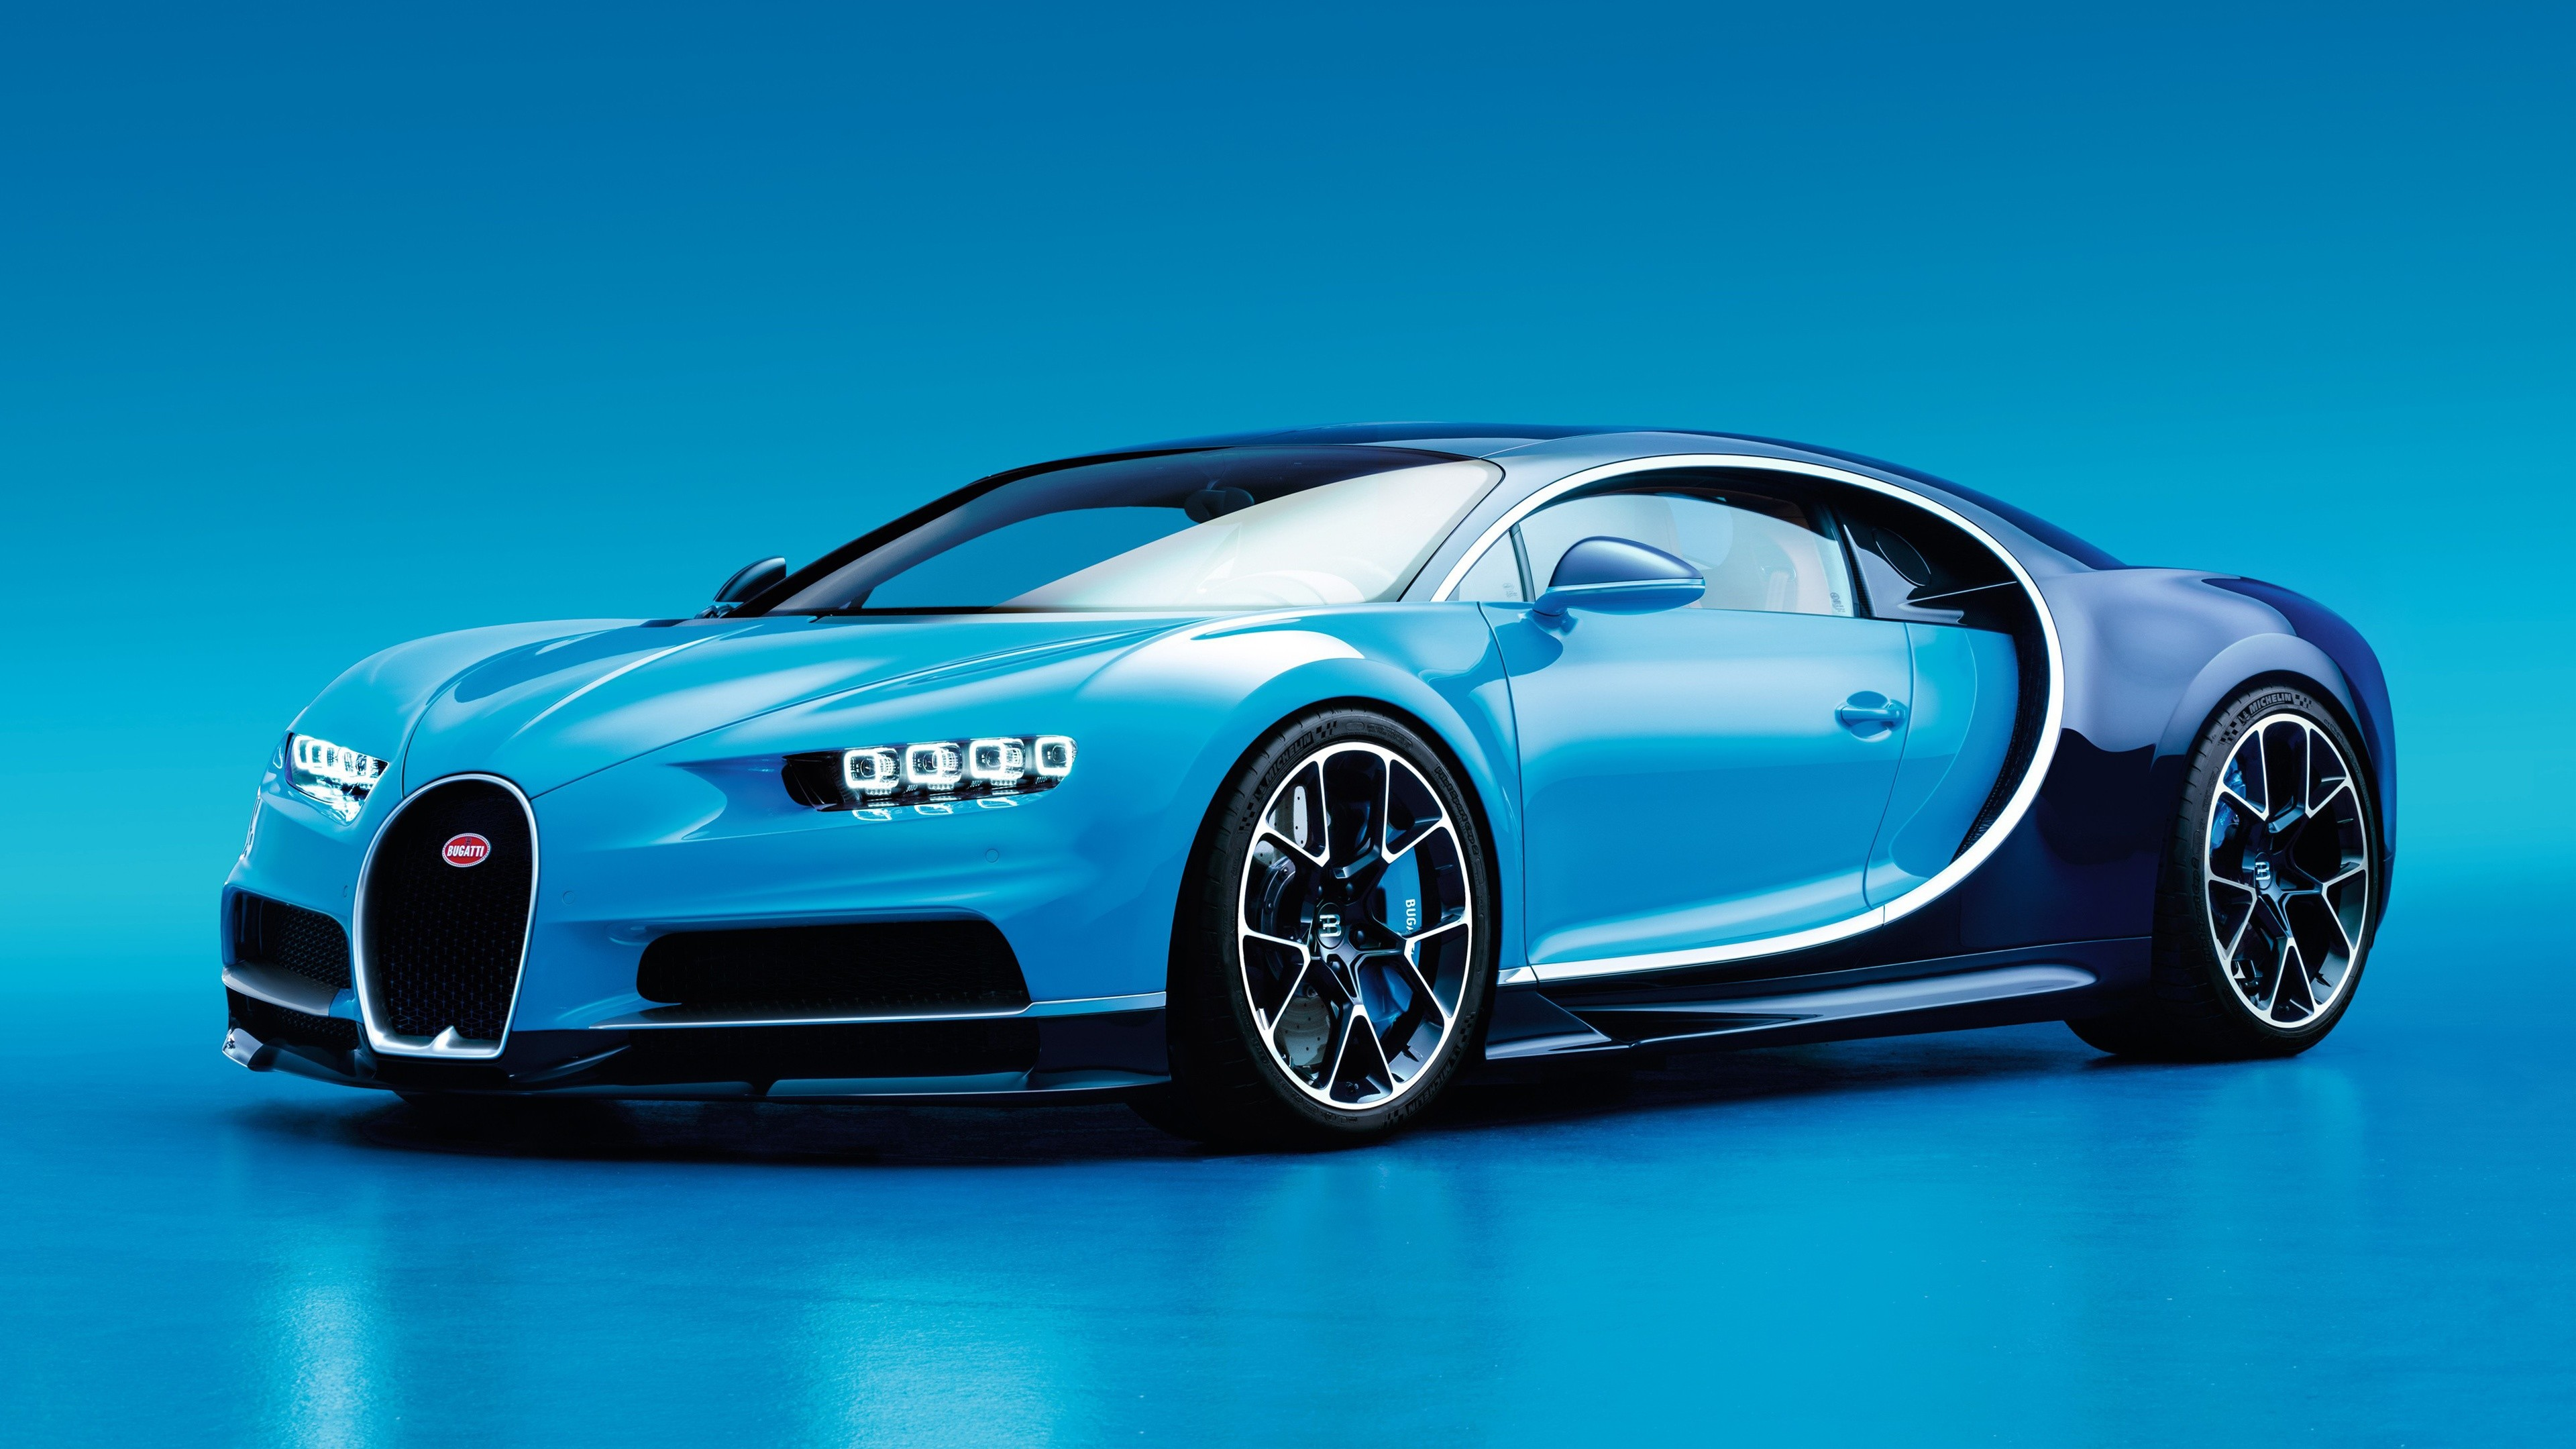 3840x2160 Cool Bugatti Wallpaper Mobile